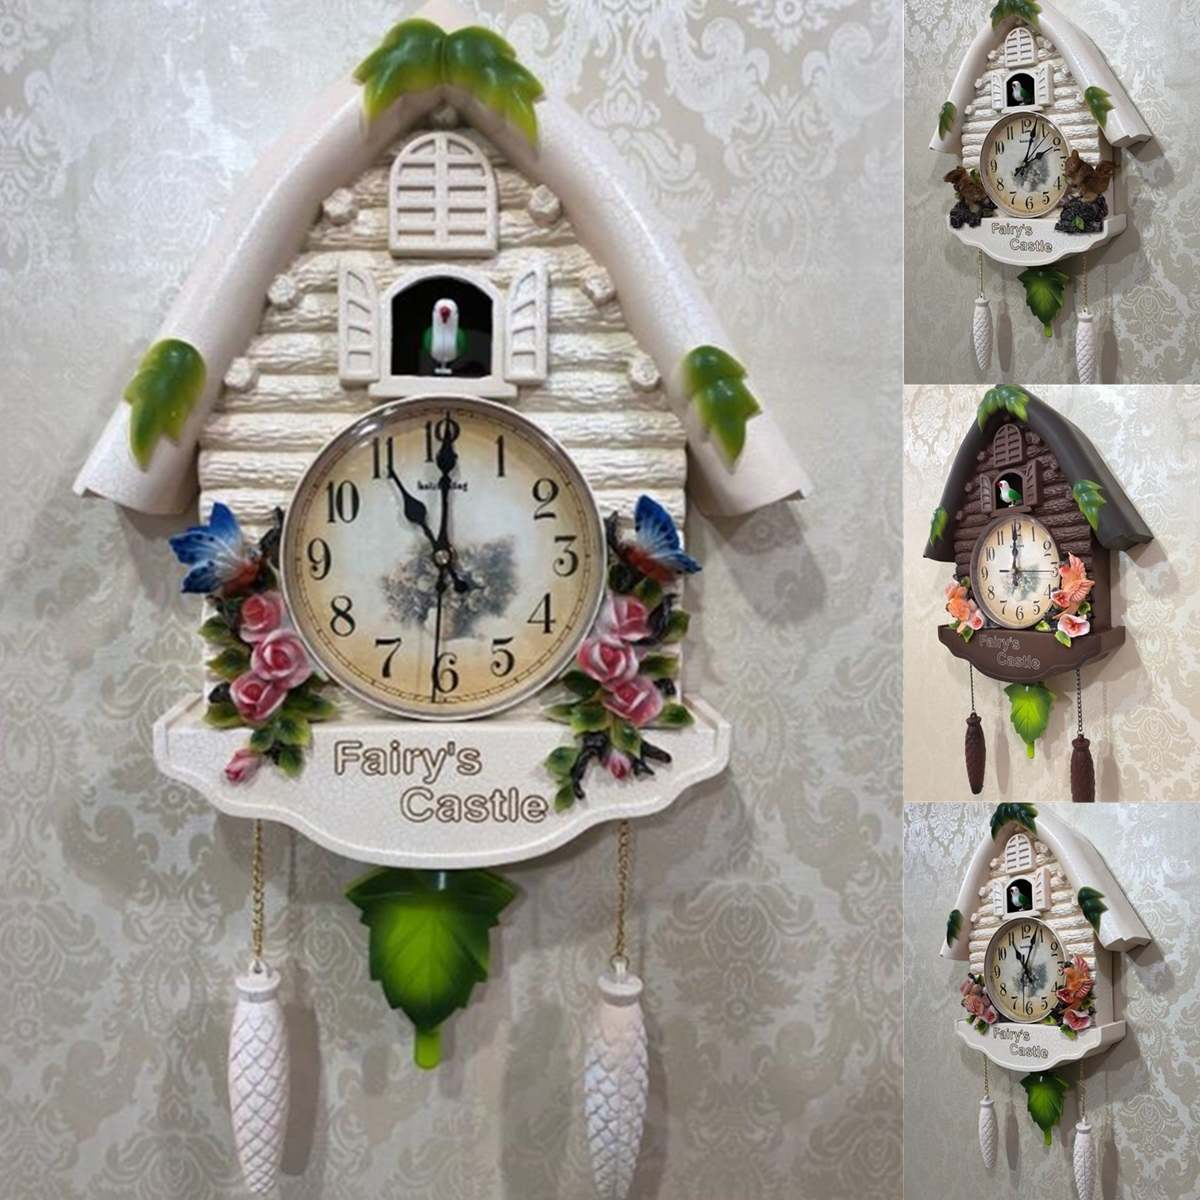 Alarm Clock Cuckoo Bird Wall Clock Guess Women Watch Mechanism Brief Children Home Decoration Quartz Relogio Parede Gift 5ZB054Alarm Clock Cuckoo Bird Wall Clock Guess Women Watch Mechanism Brief Children Home Decoration Quartz Relogio Parede Gift 5ZB054